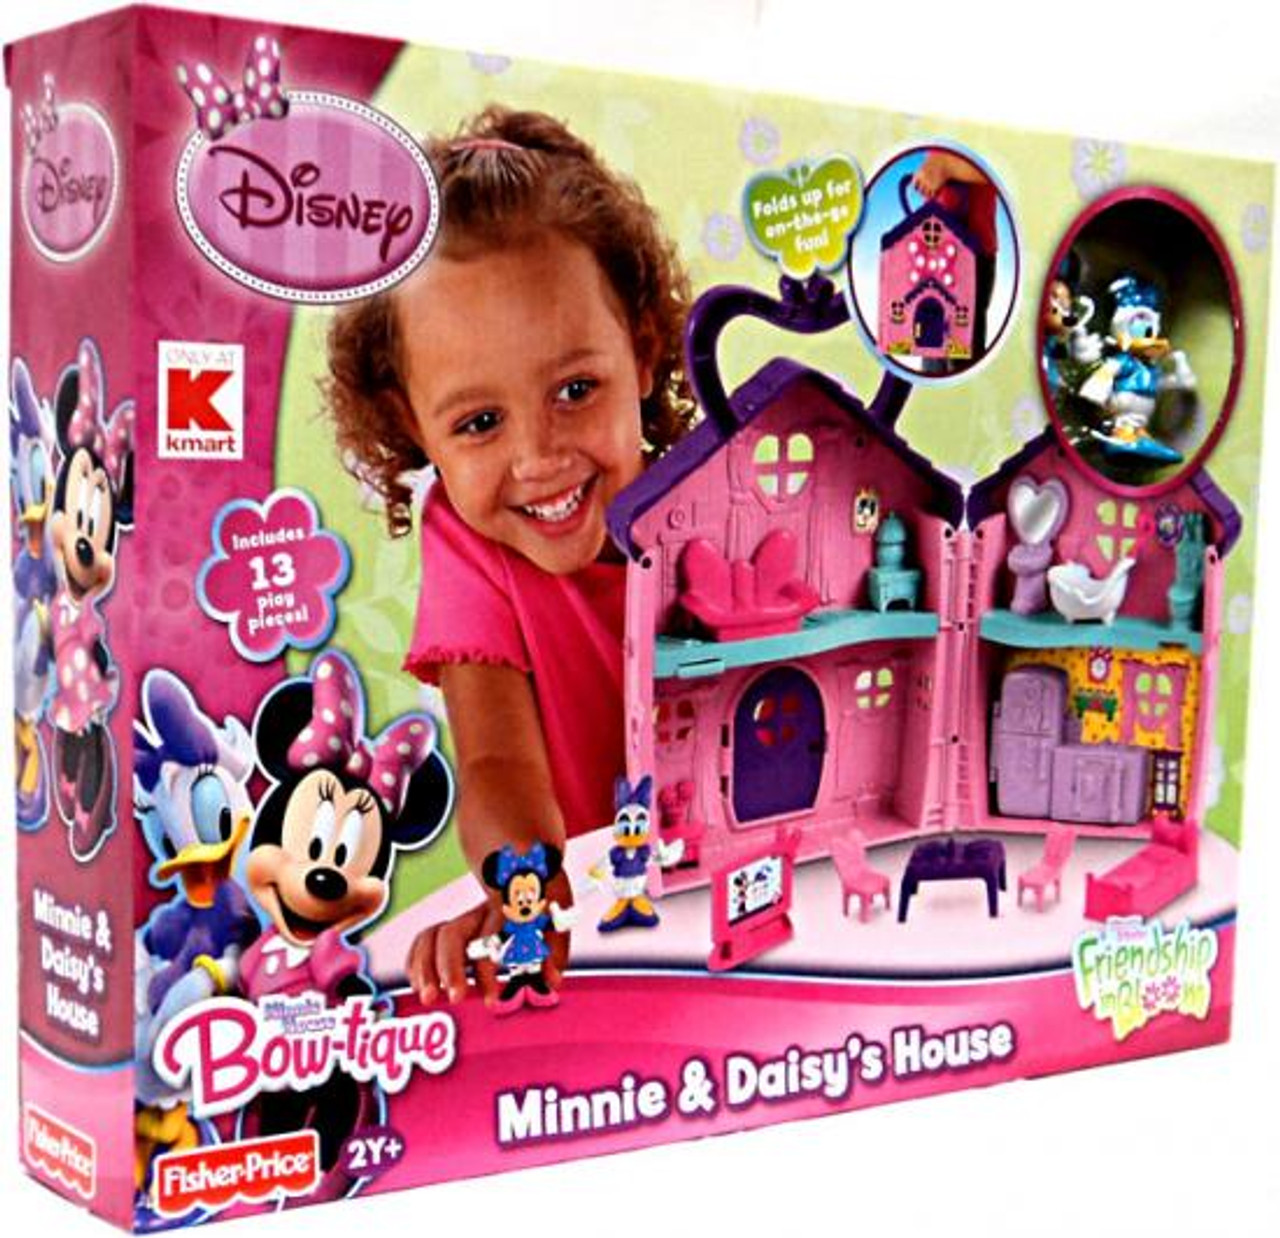 Fisher Price Disney Minnie Mouse Bow-tique Minnie & Daisy's House Exclusive Playset